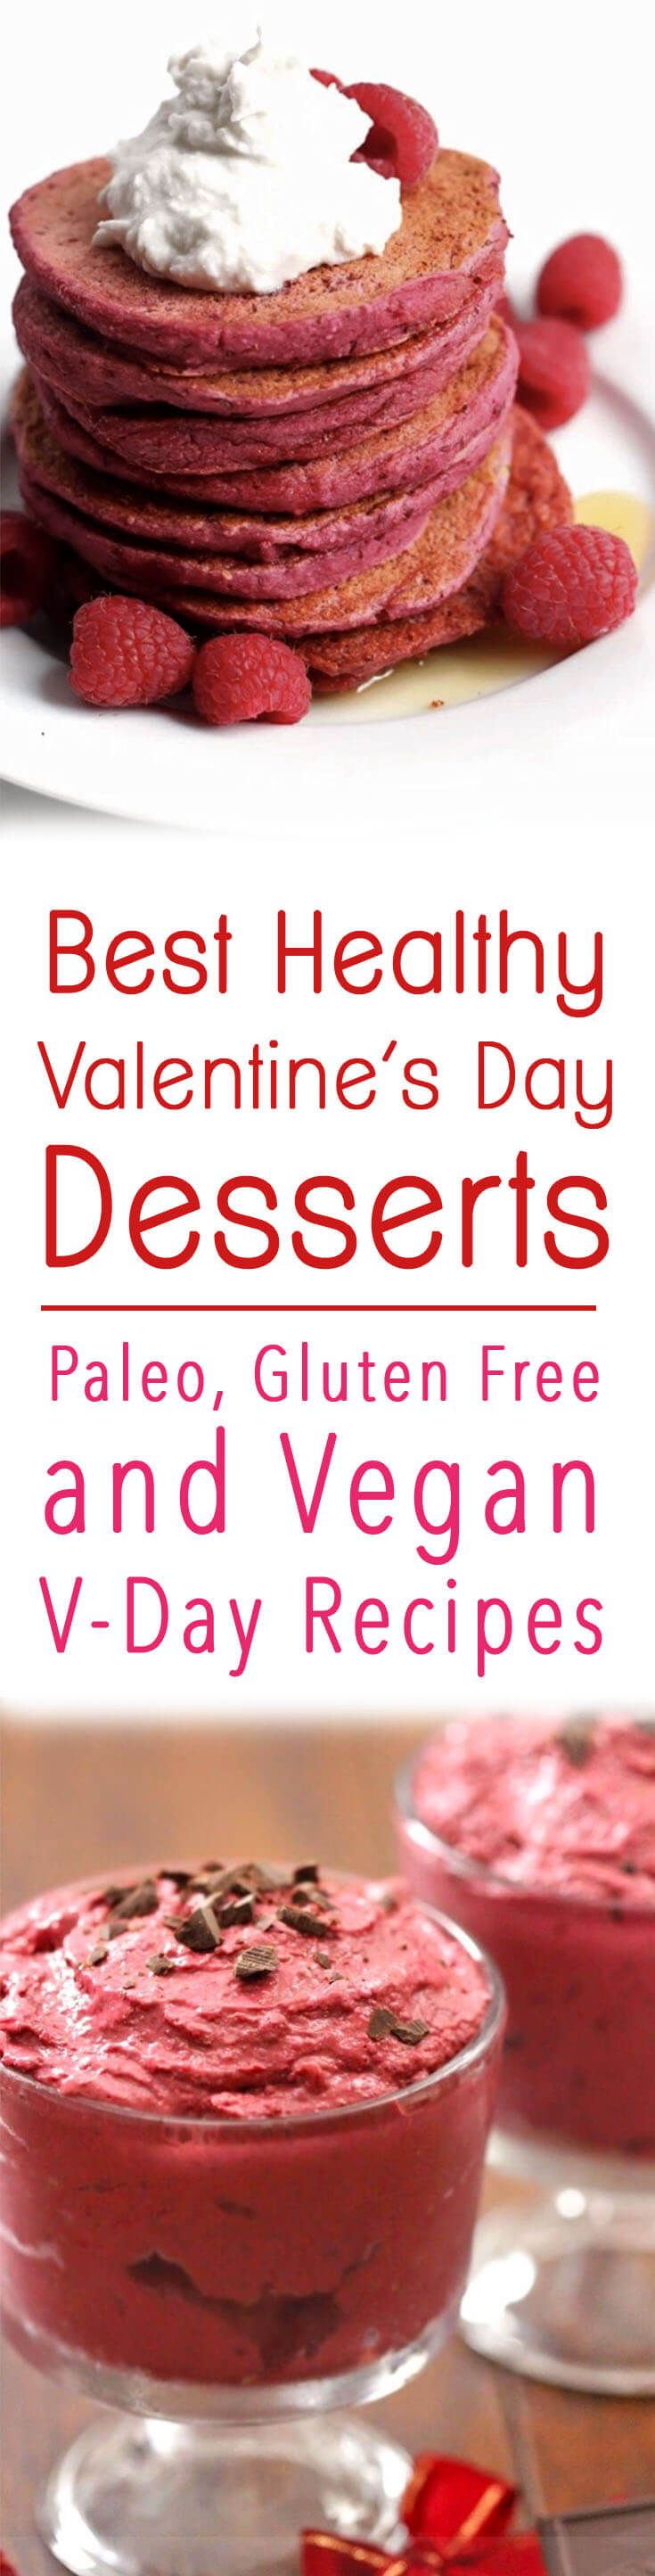 Paleo valentine s day meal ideas - 35 Best Healthy Valentine S Day Desserts Valentine Recipesvalentines